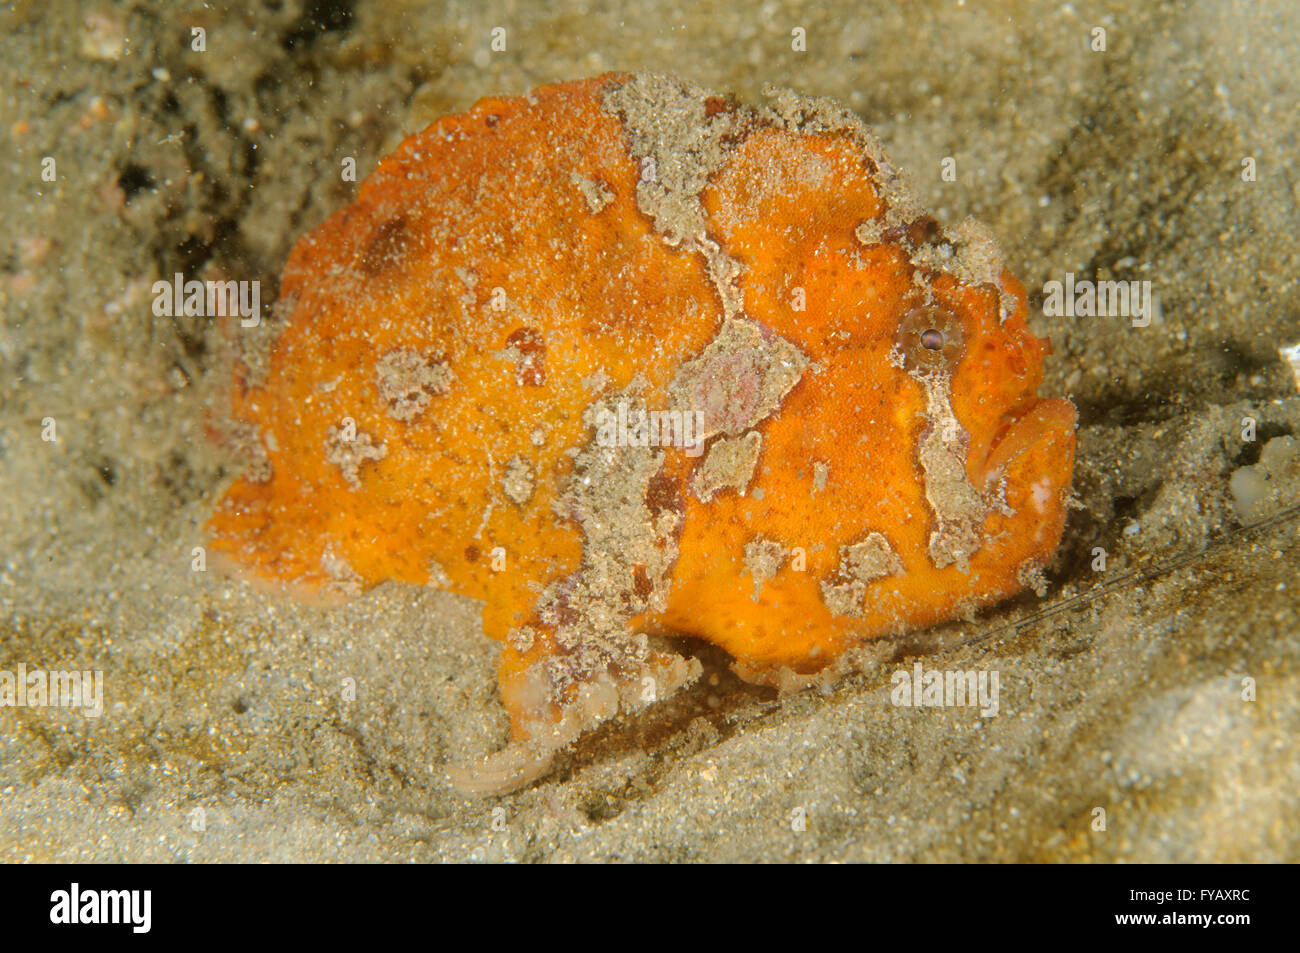 Freckled anglerfish, Antennatus coccineus, at Chowder Bay, Clifton Gardens, New South Wales, Australia. Depth: 3.8 - Stock Image